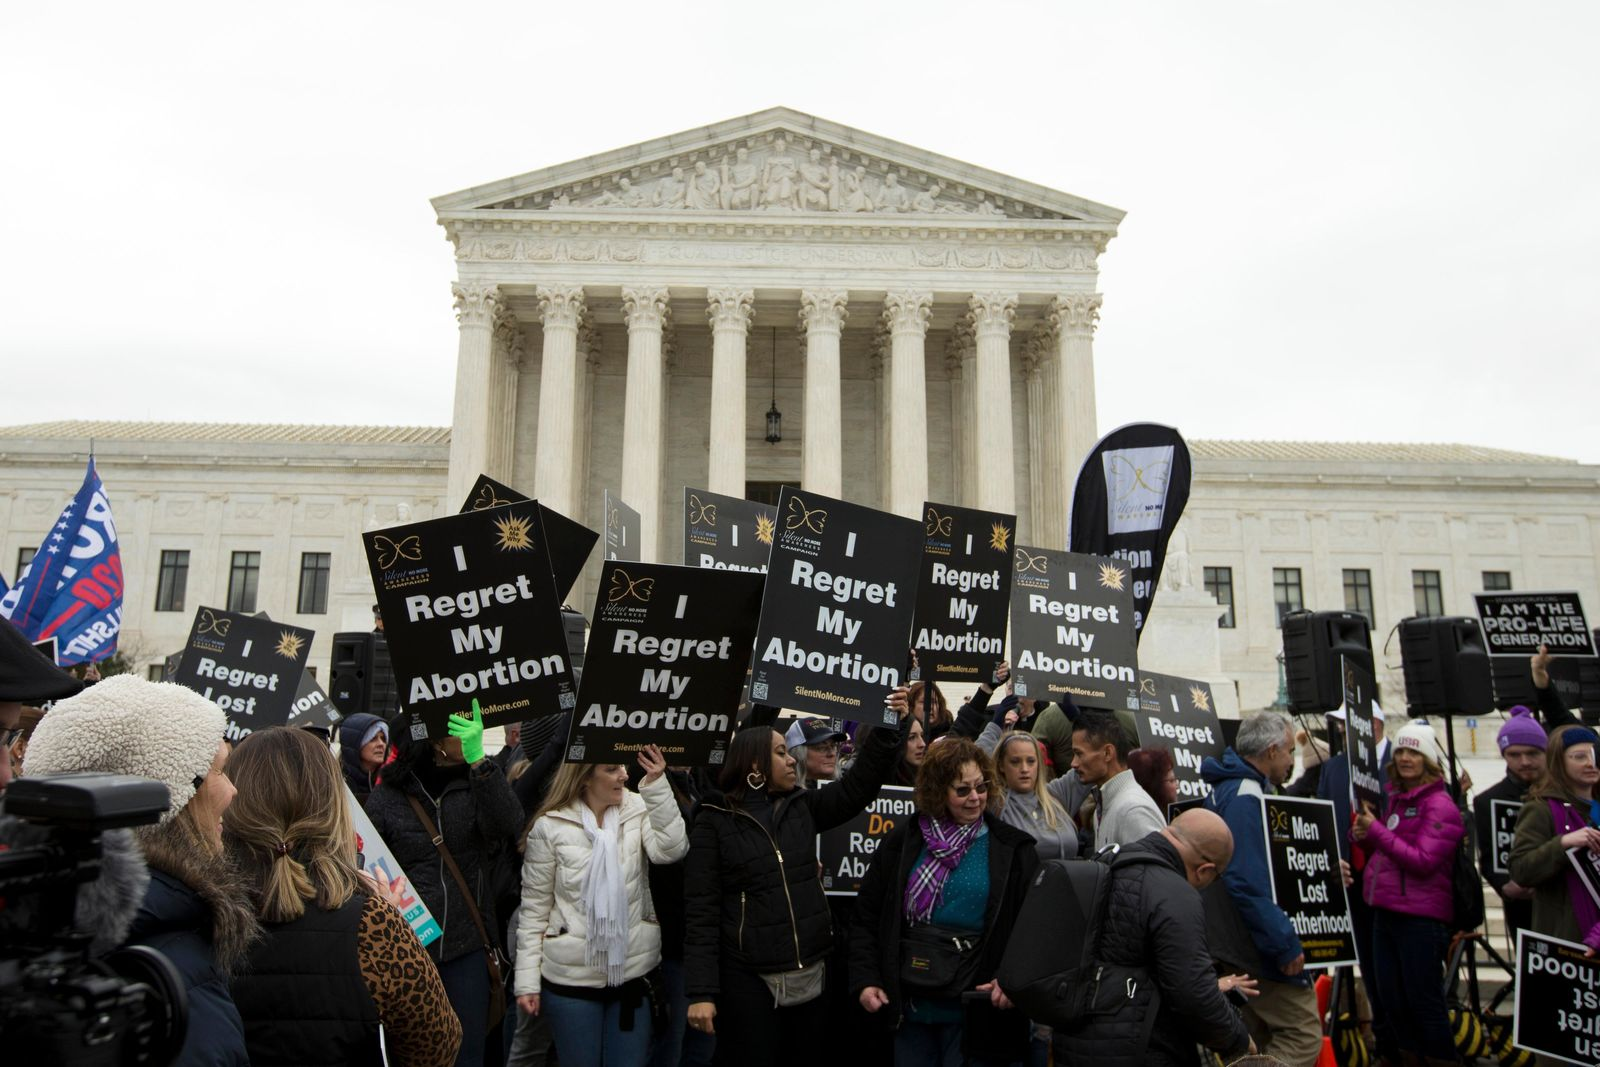 Anti-abortion activists rally outside of the U.S. Supreme Court, during the March for Life in Washington, Friday, Jan. 24, 2020. (AP Photo/Jose Luis Magana)